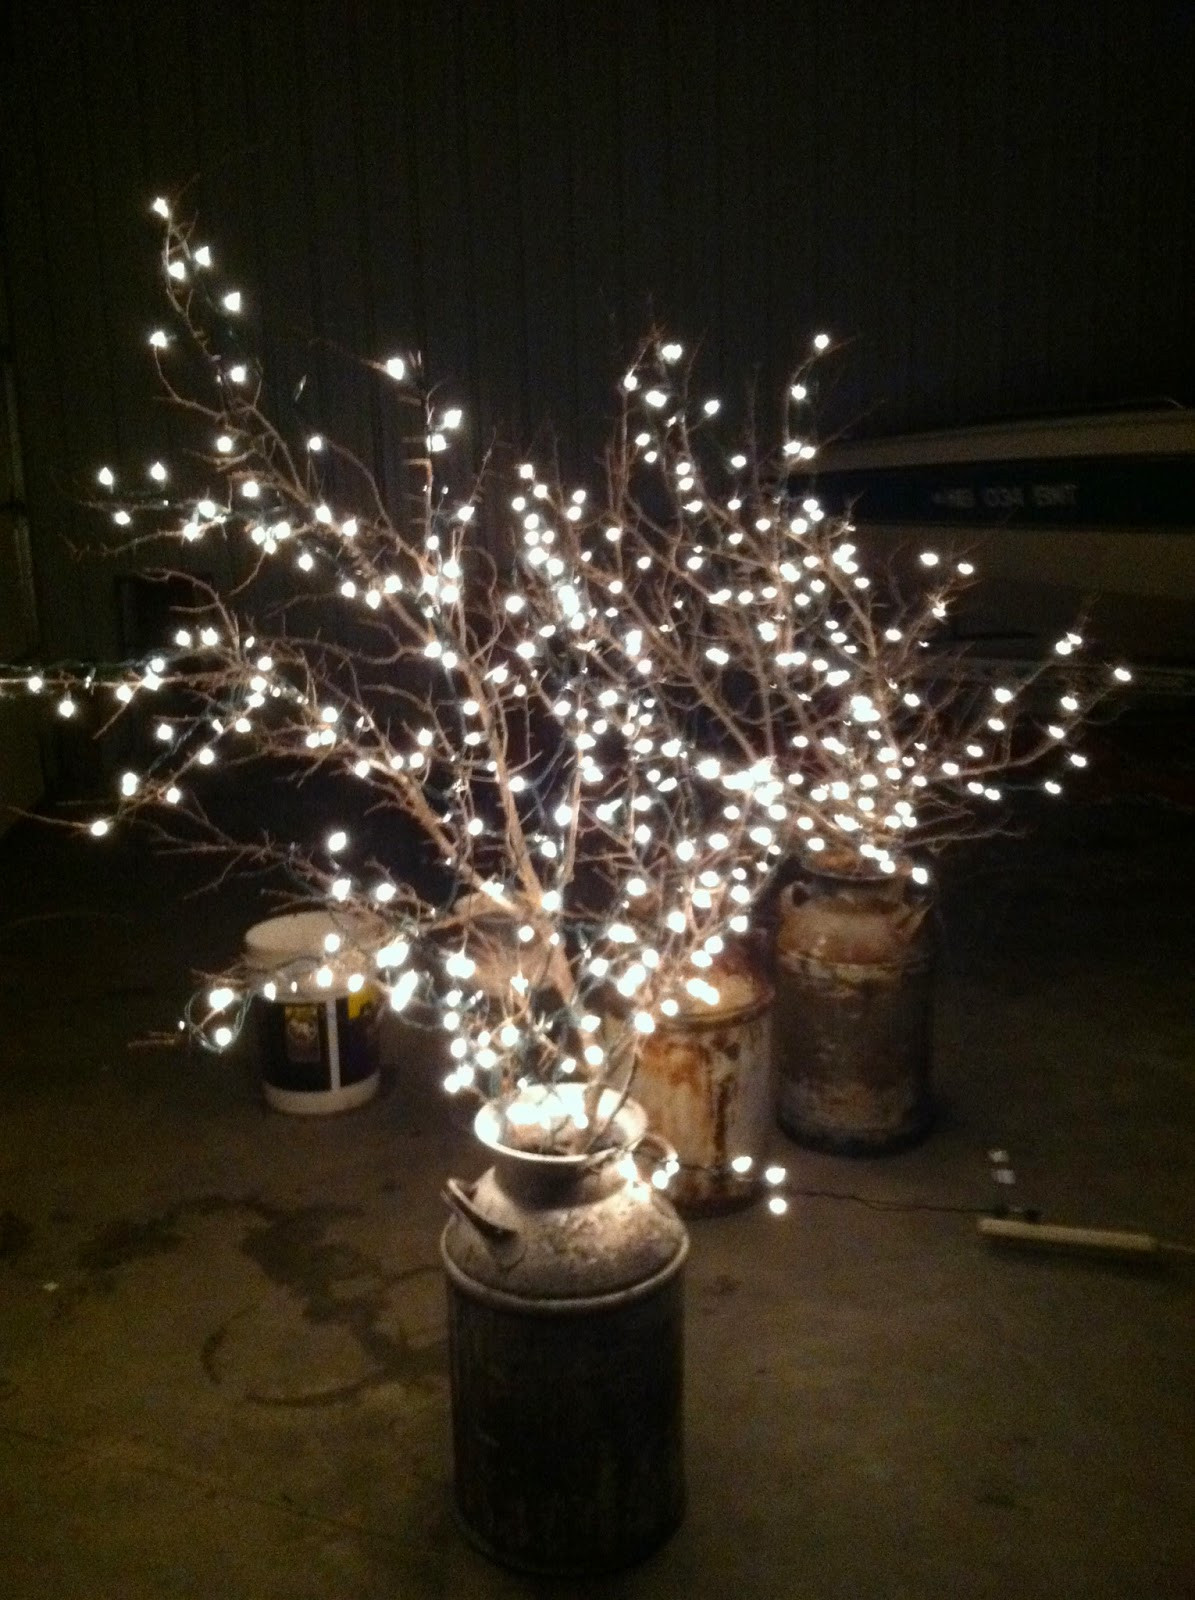 Best ideas about DIY Wedding Lighting . Save or Pin DIY Why Spend More Milk cans branches white lights Now.